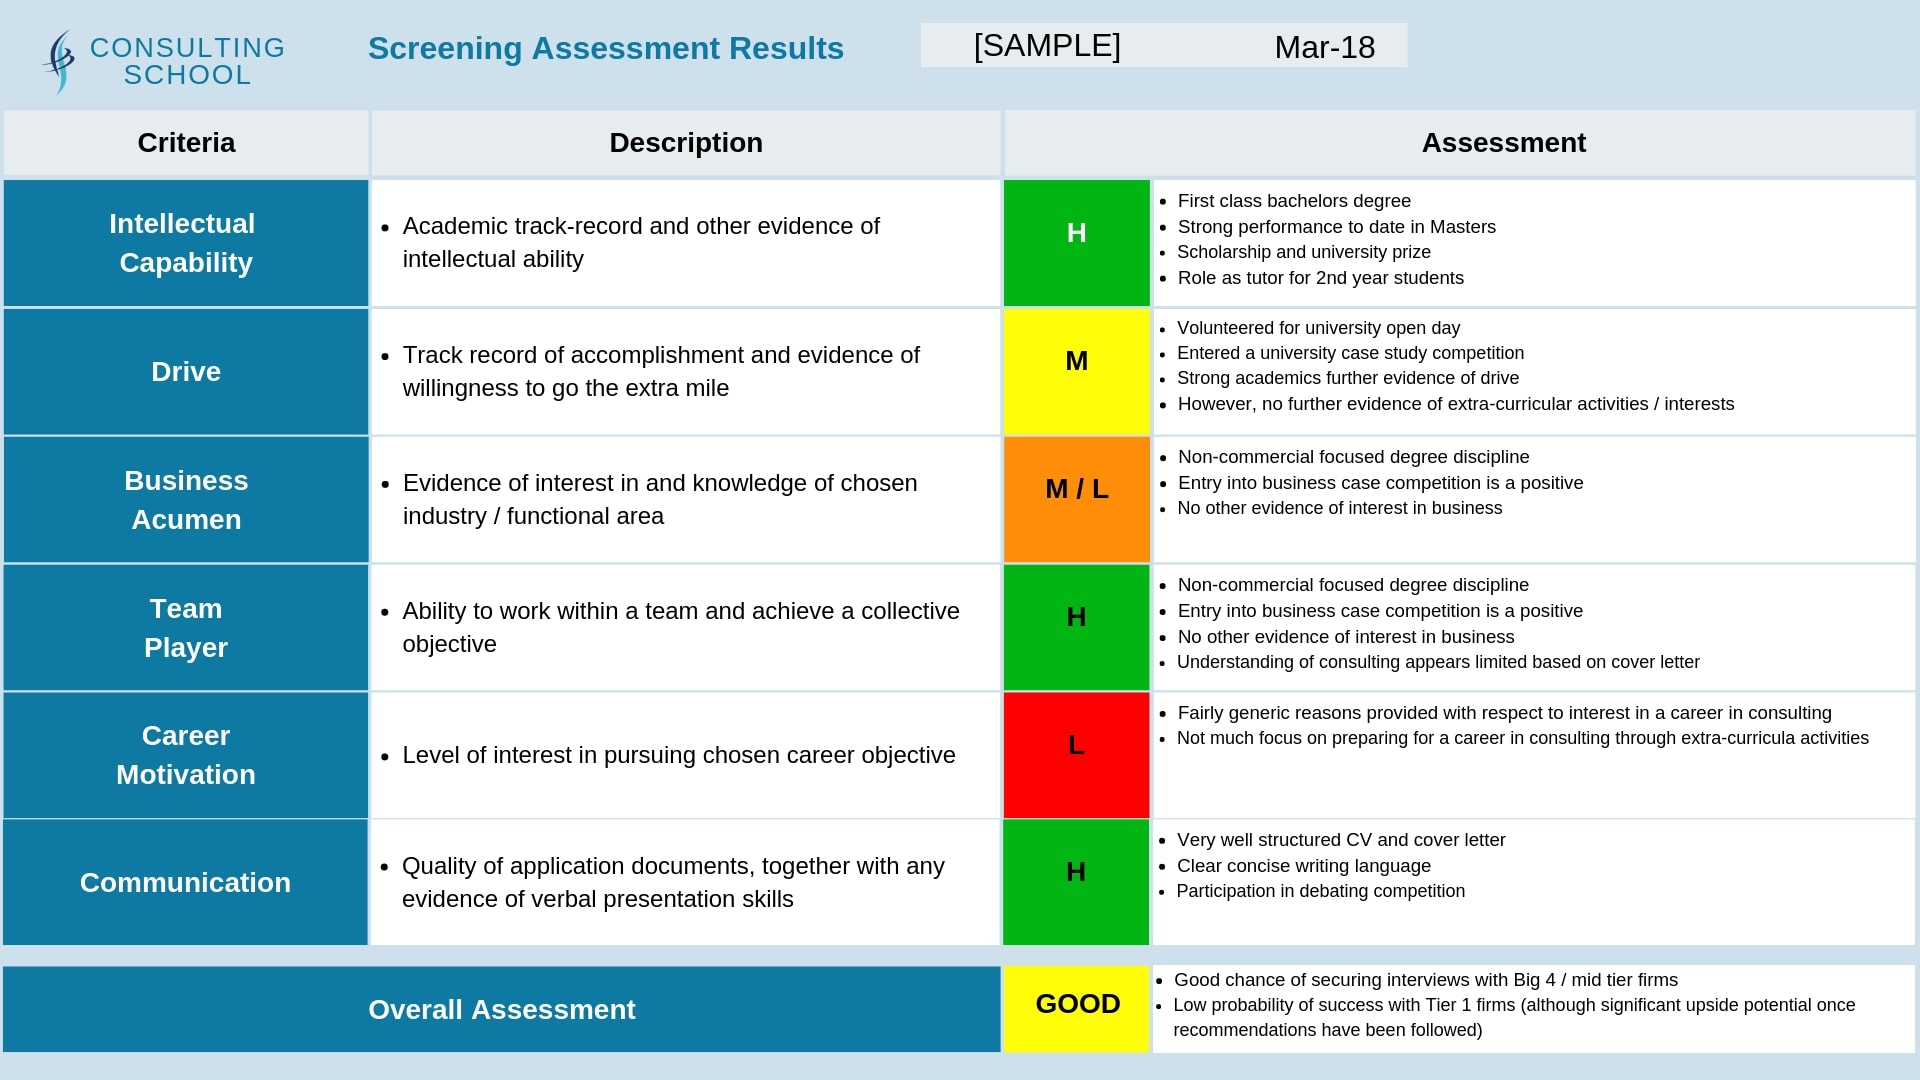 3. We complete a full screening assessment